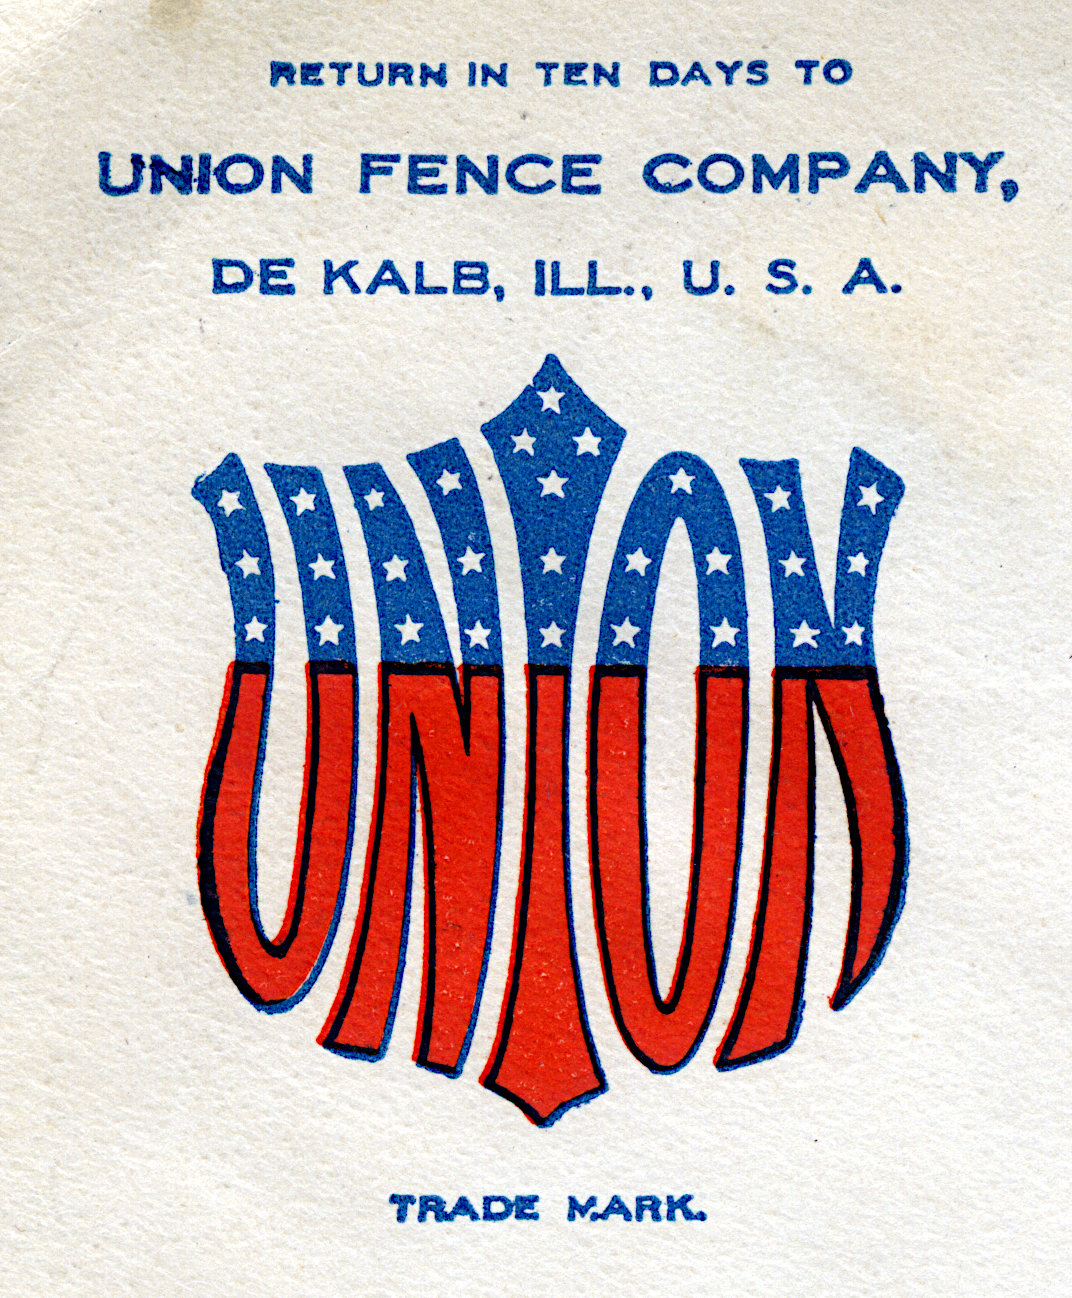 advertising image for a fencing company on an envelope